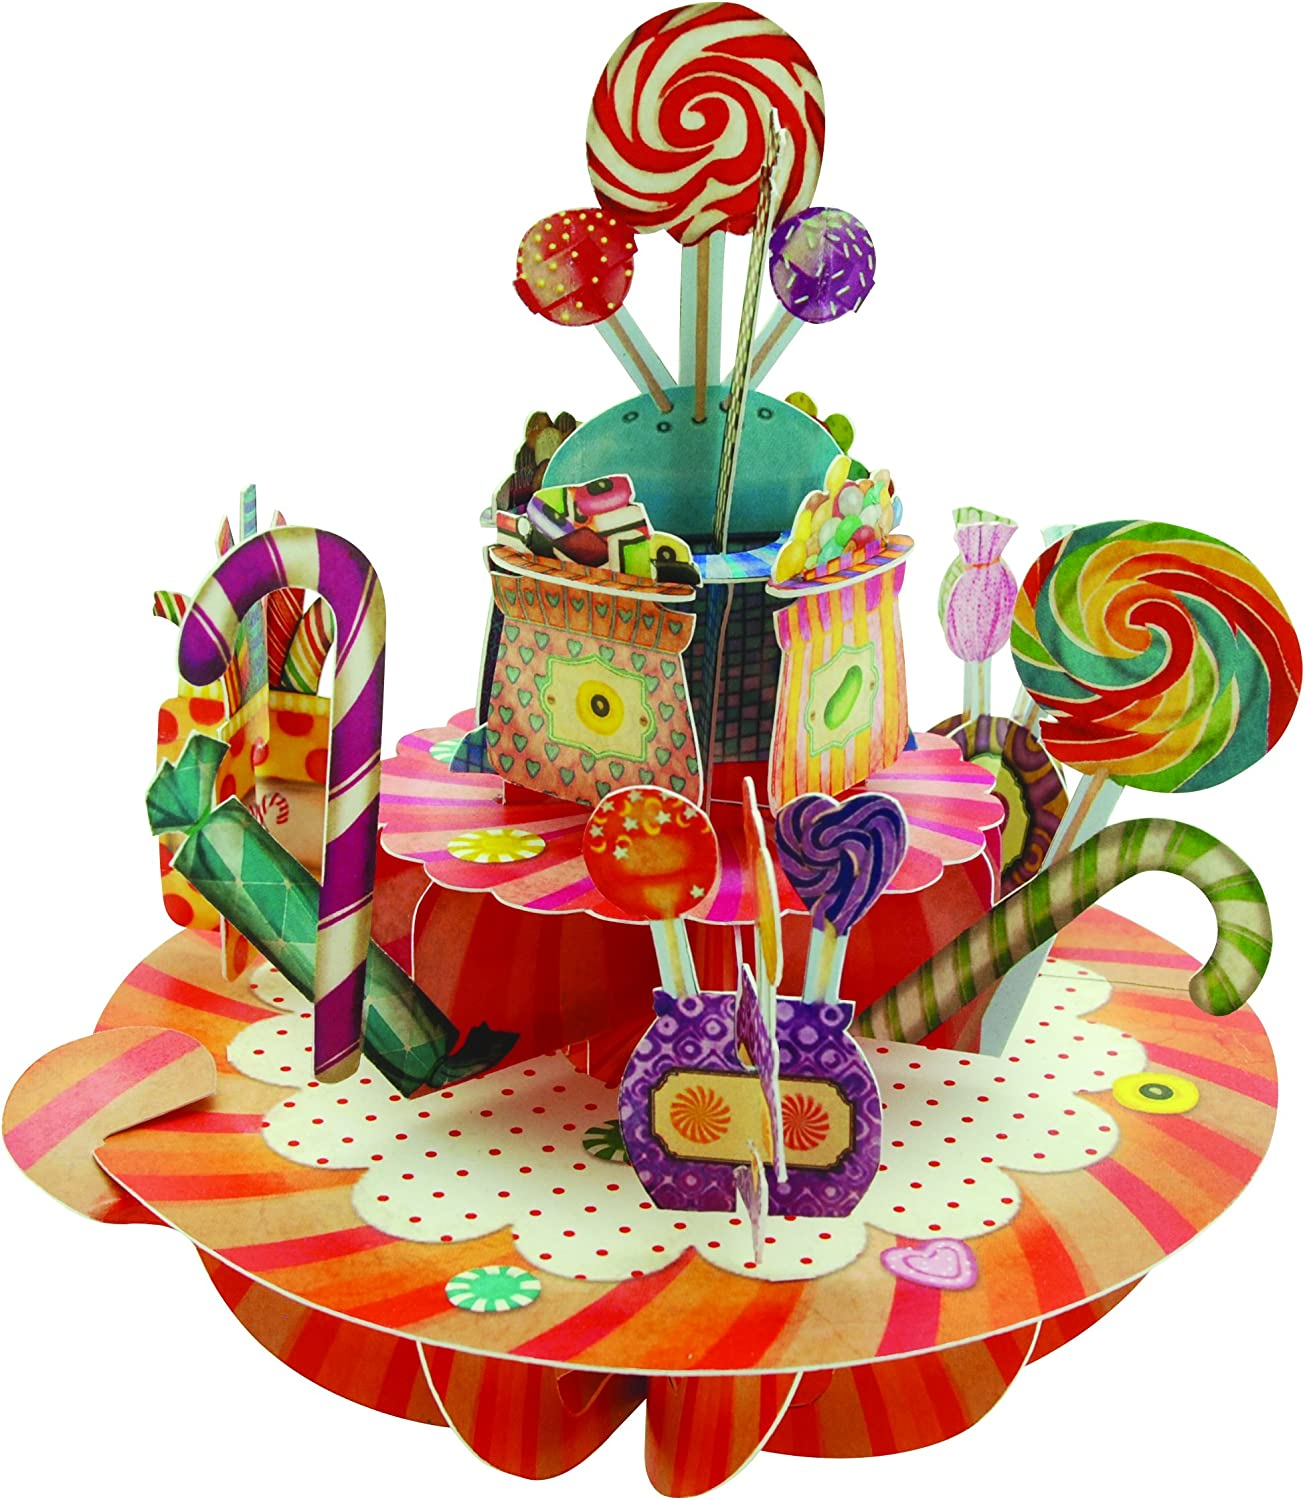 Santoro Pirouettes Sweets and Candy 3D Pop Up Card